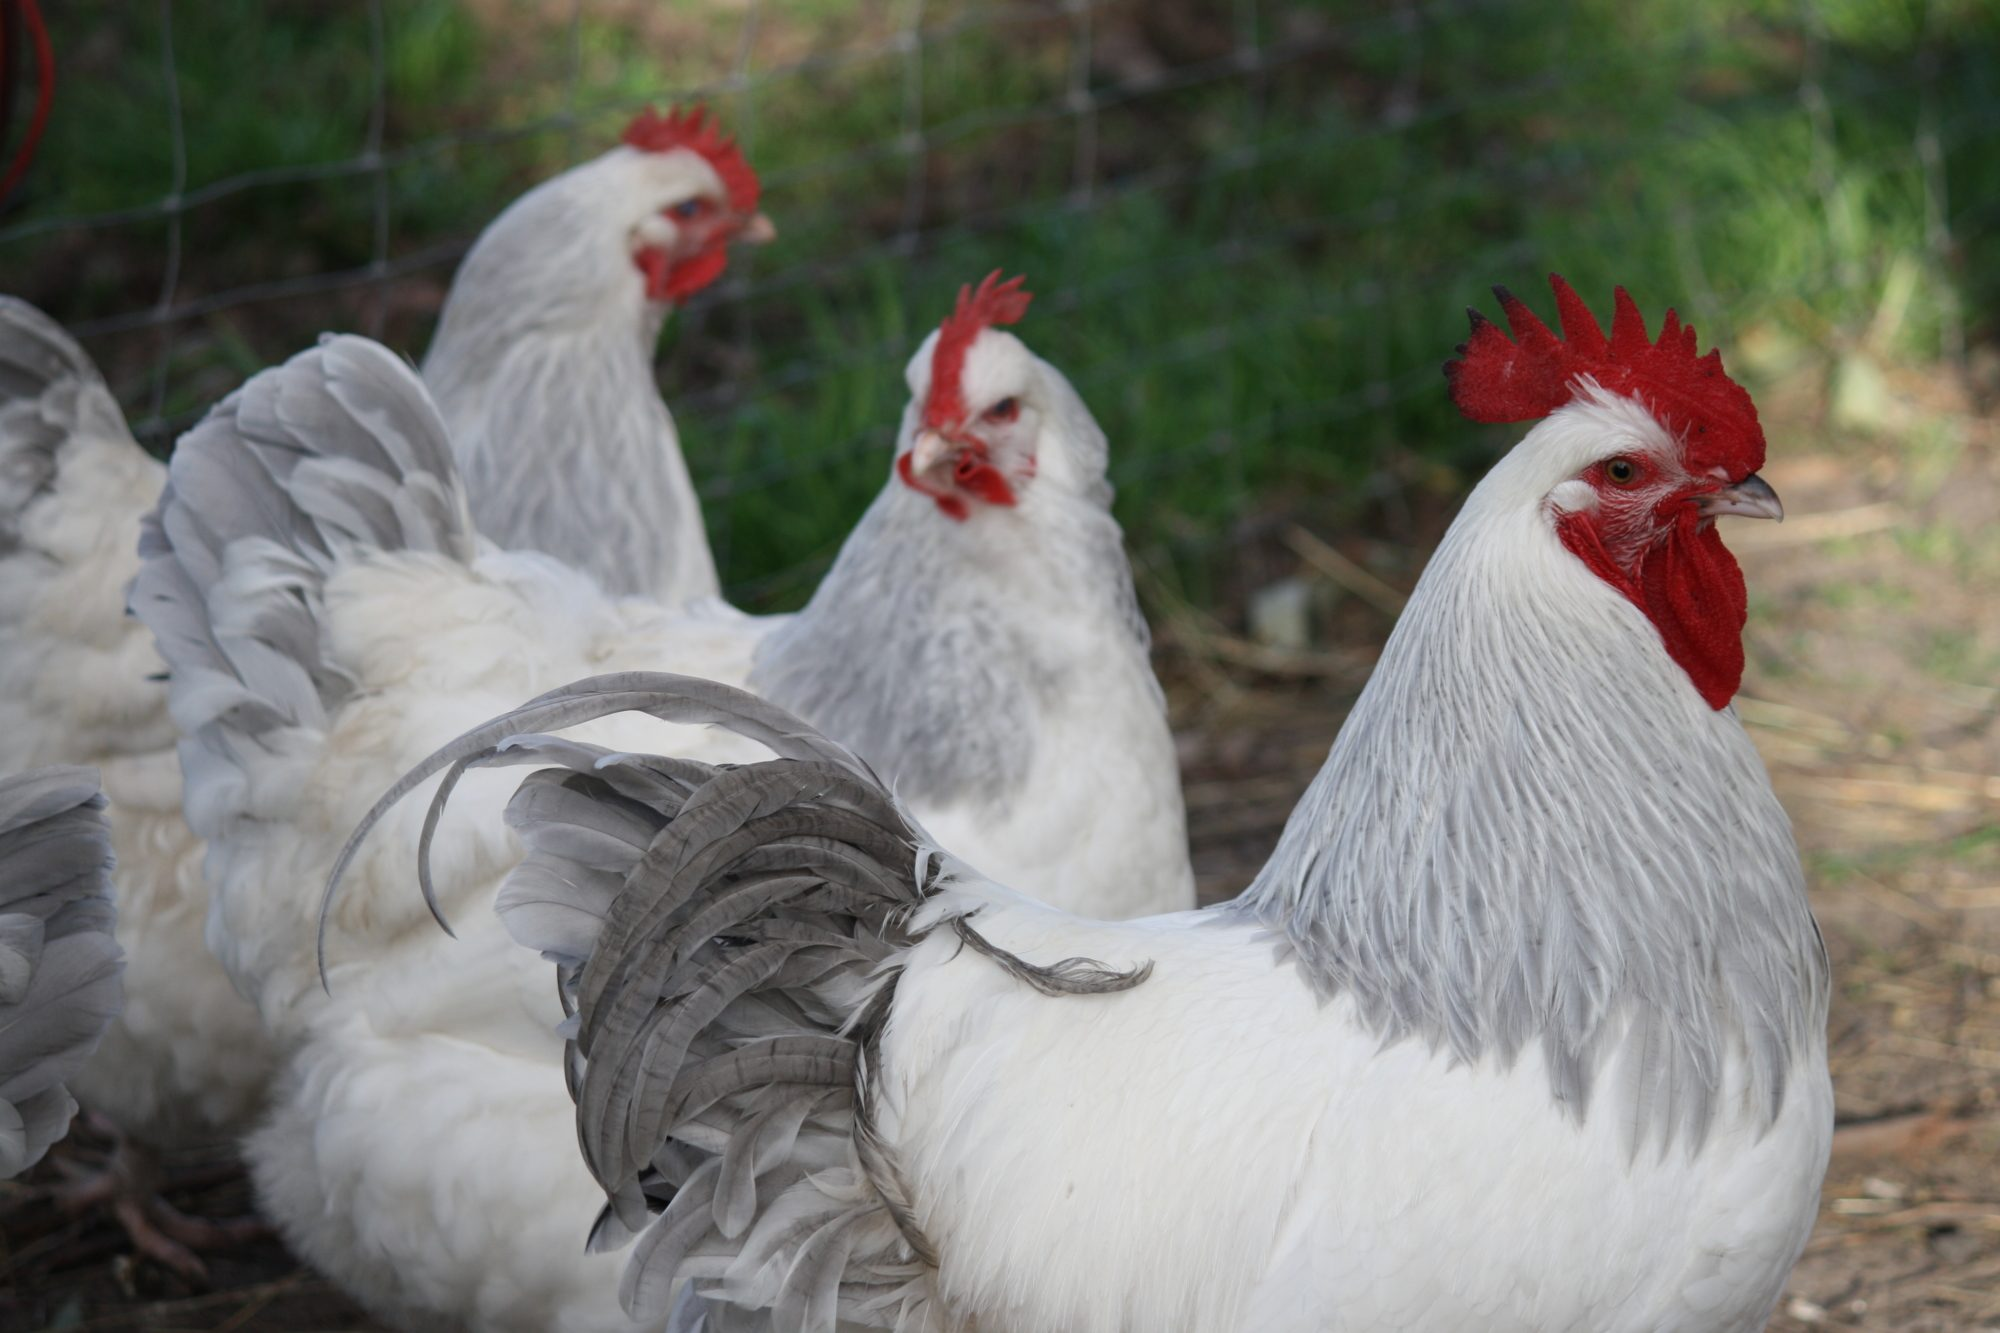 Sussex chicken is a dual-purpose chicken breed, they can be raised as chicken breeds for eggs and meat.